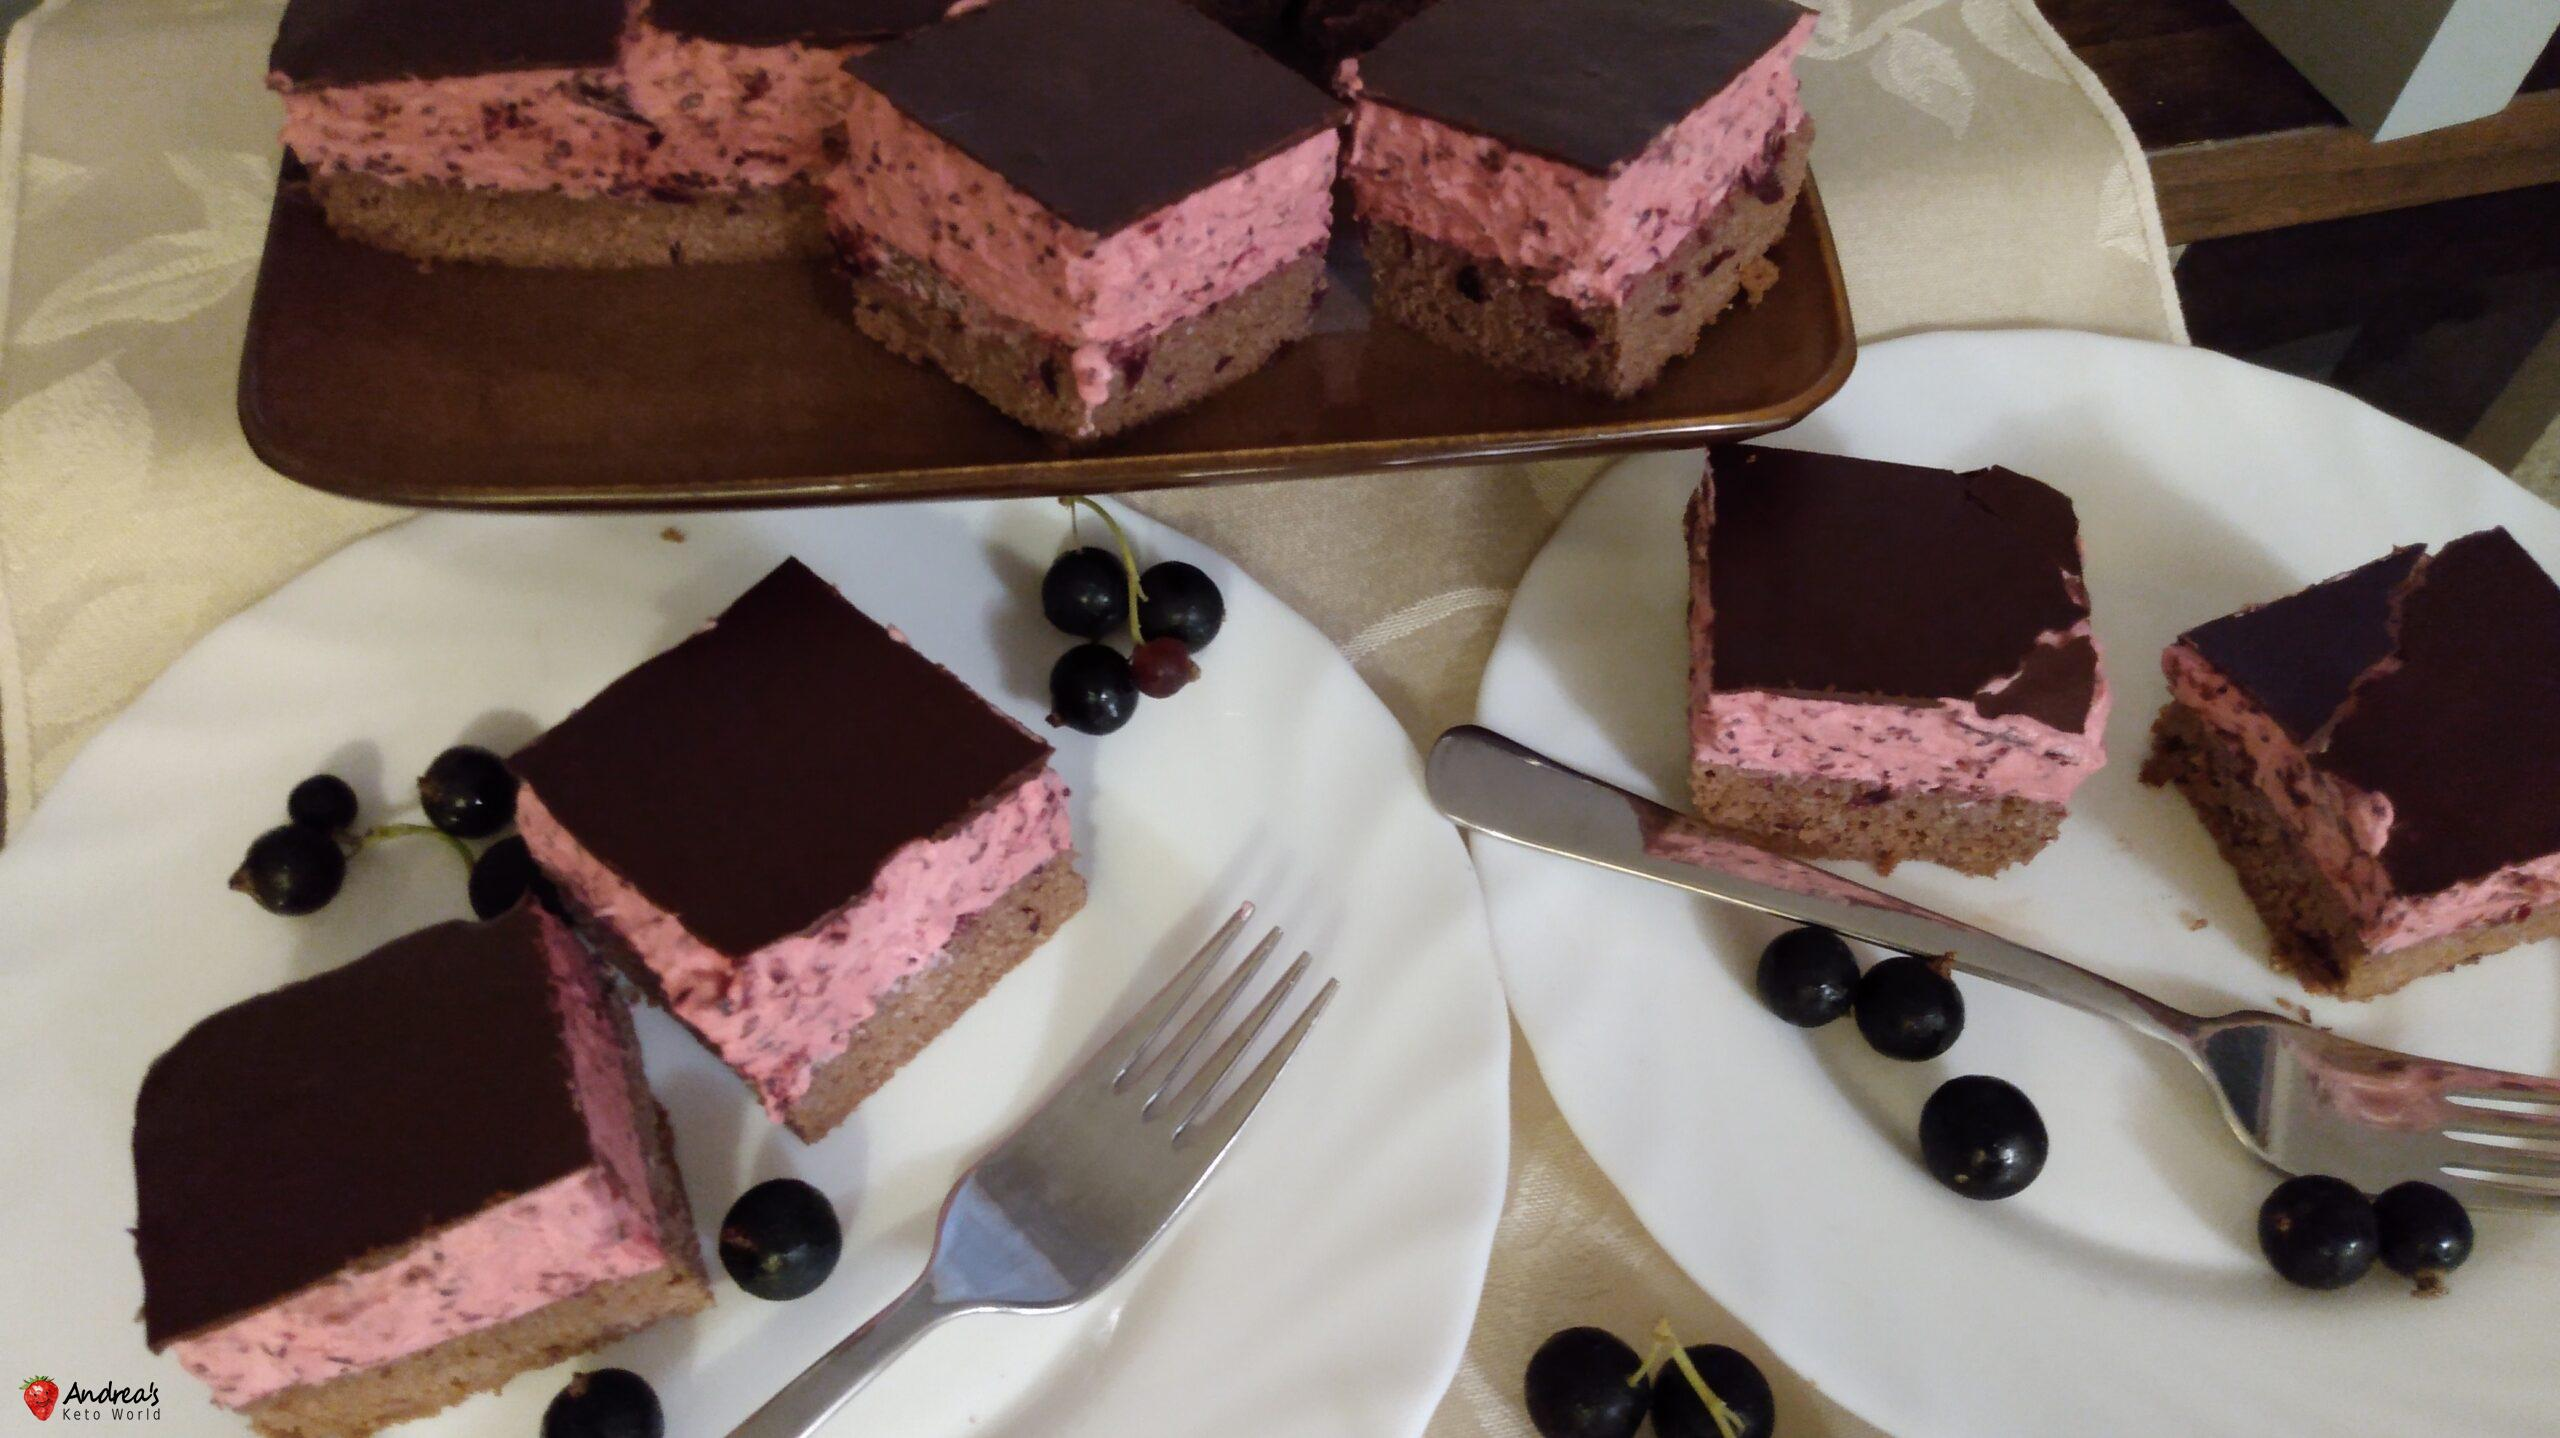 Black Currant Cake - Low-carb, Gluten-free & Very Fruity